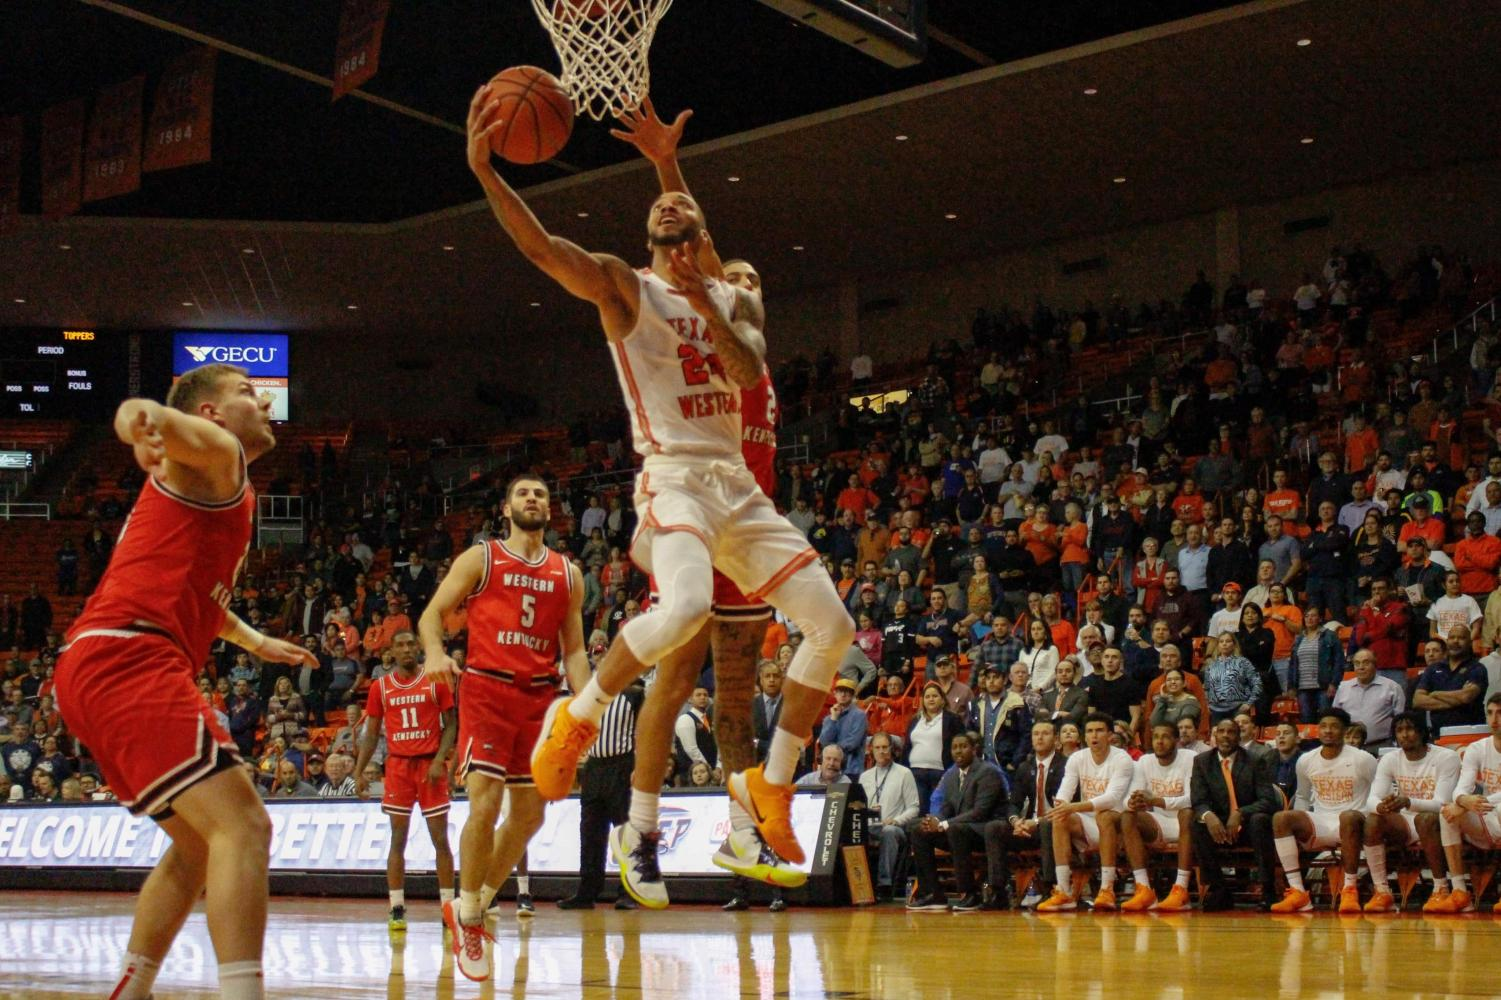 UTEP graduate transfer guard Daryl Edwards goes for a reverse layup versus Western Kentucky Feb. 13 at the Don Haskins Center.